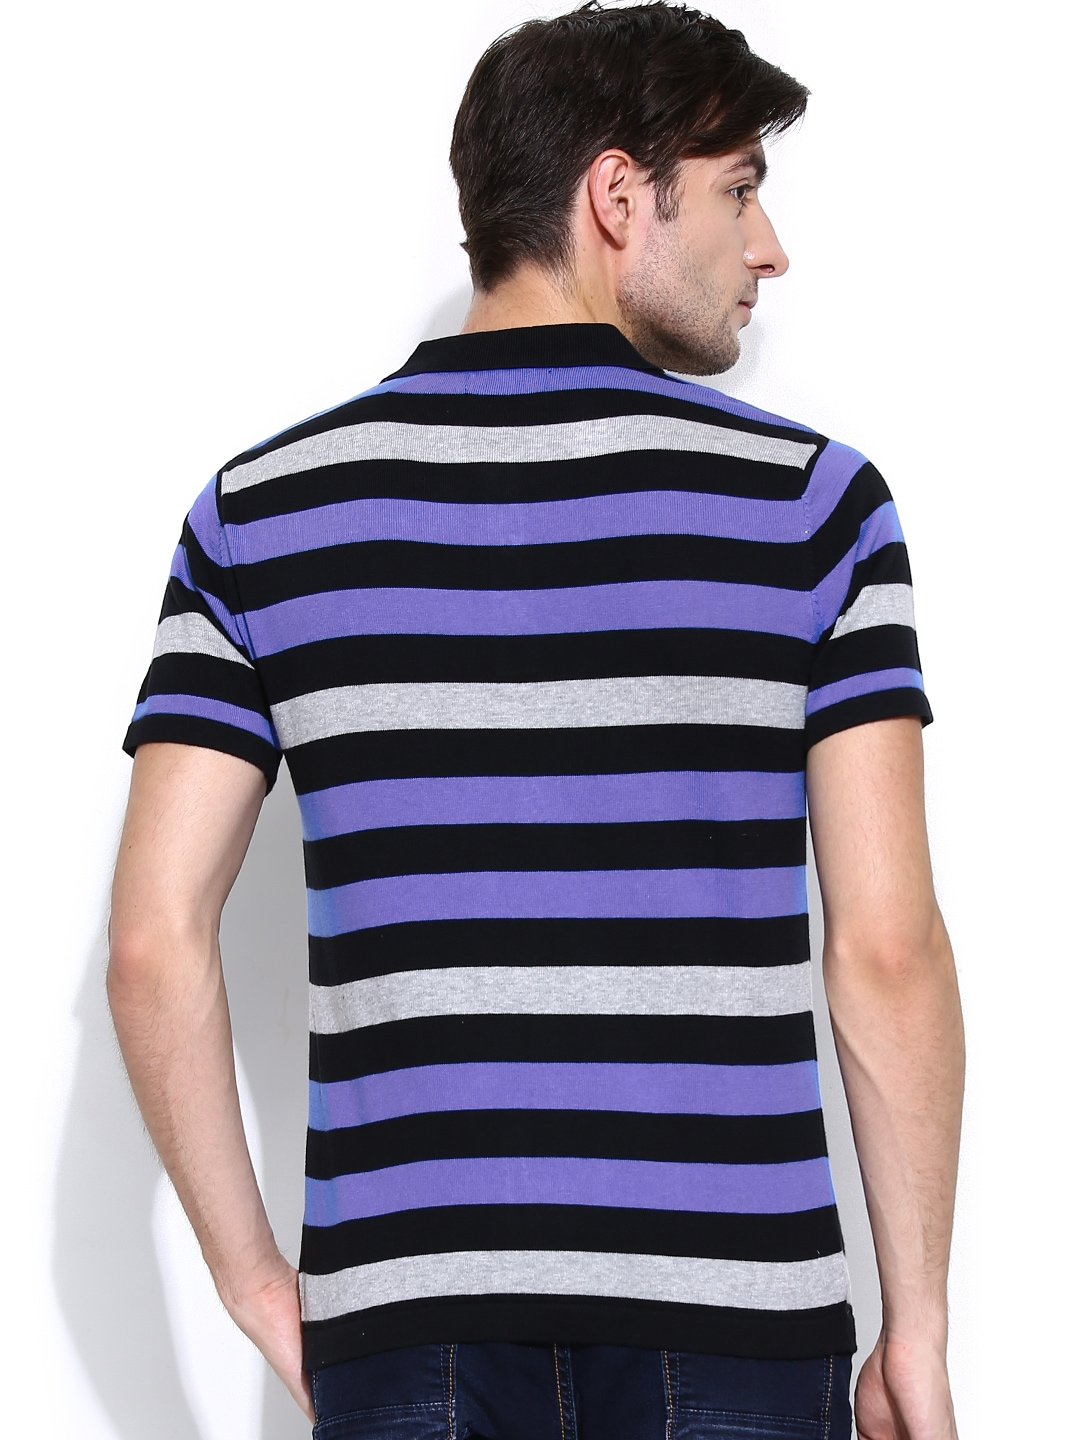 Myntra fort collins men black purple striped polo t for Purple and black striped t shirt